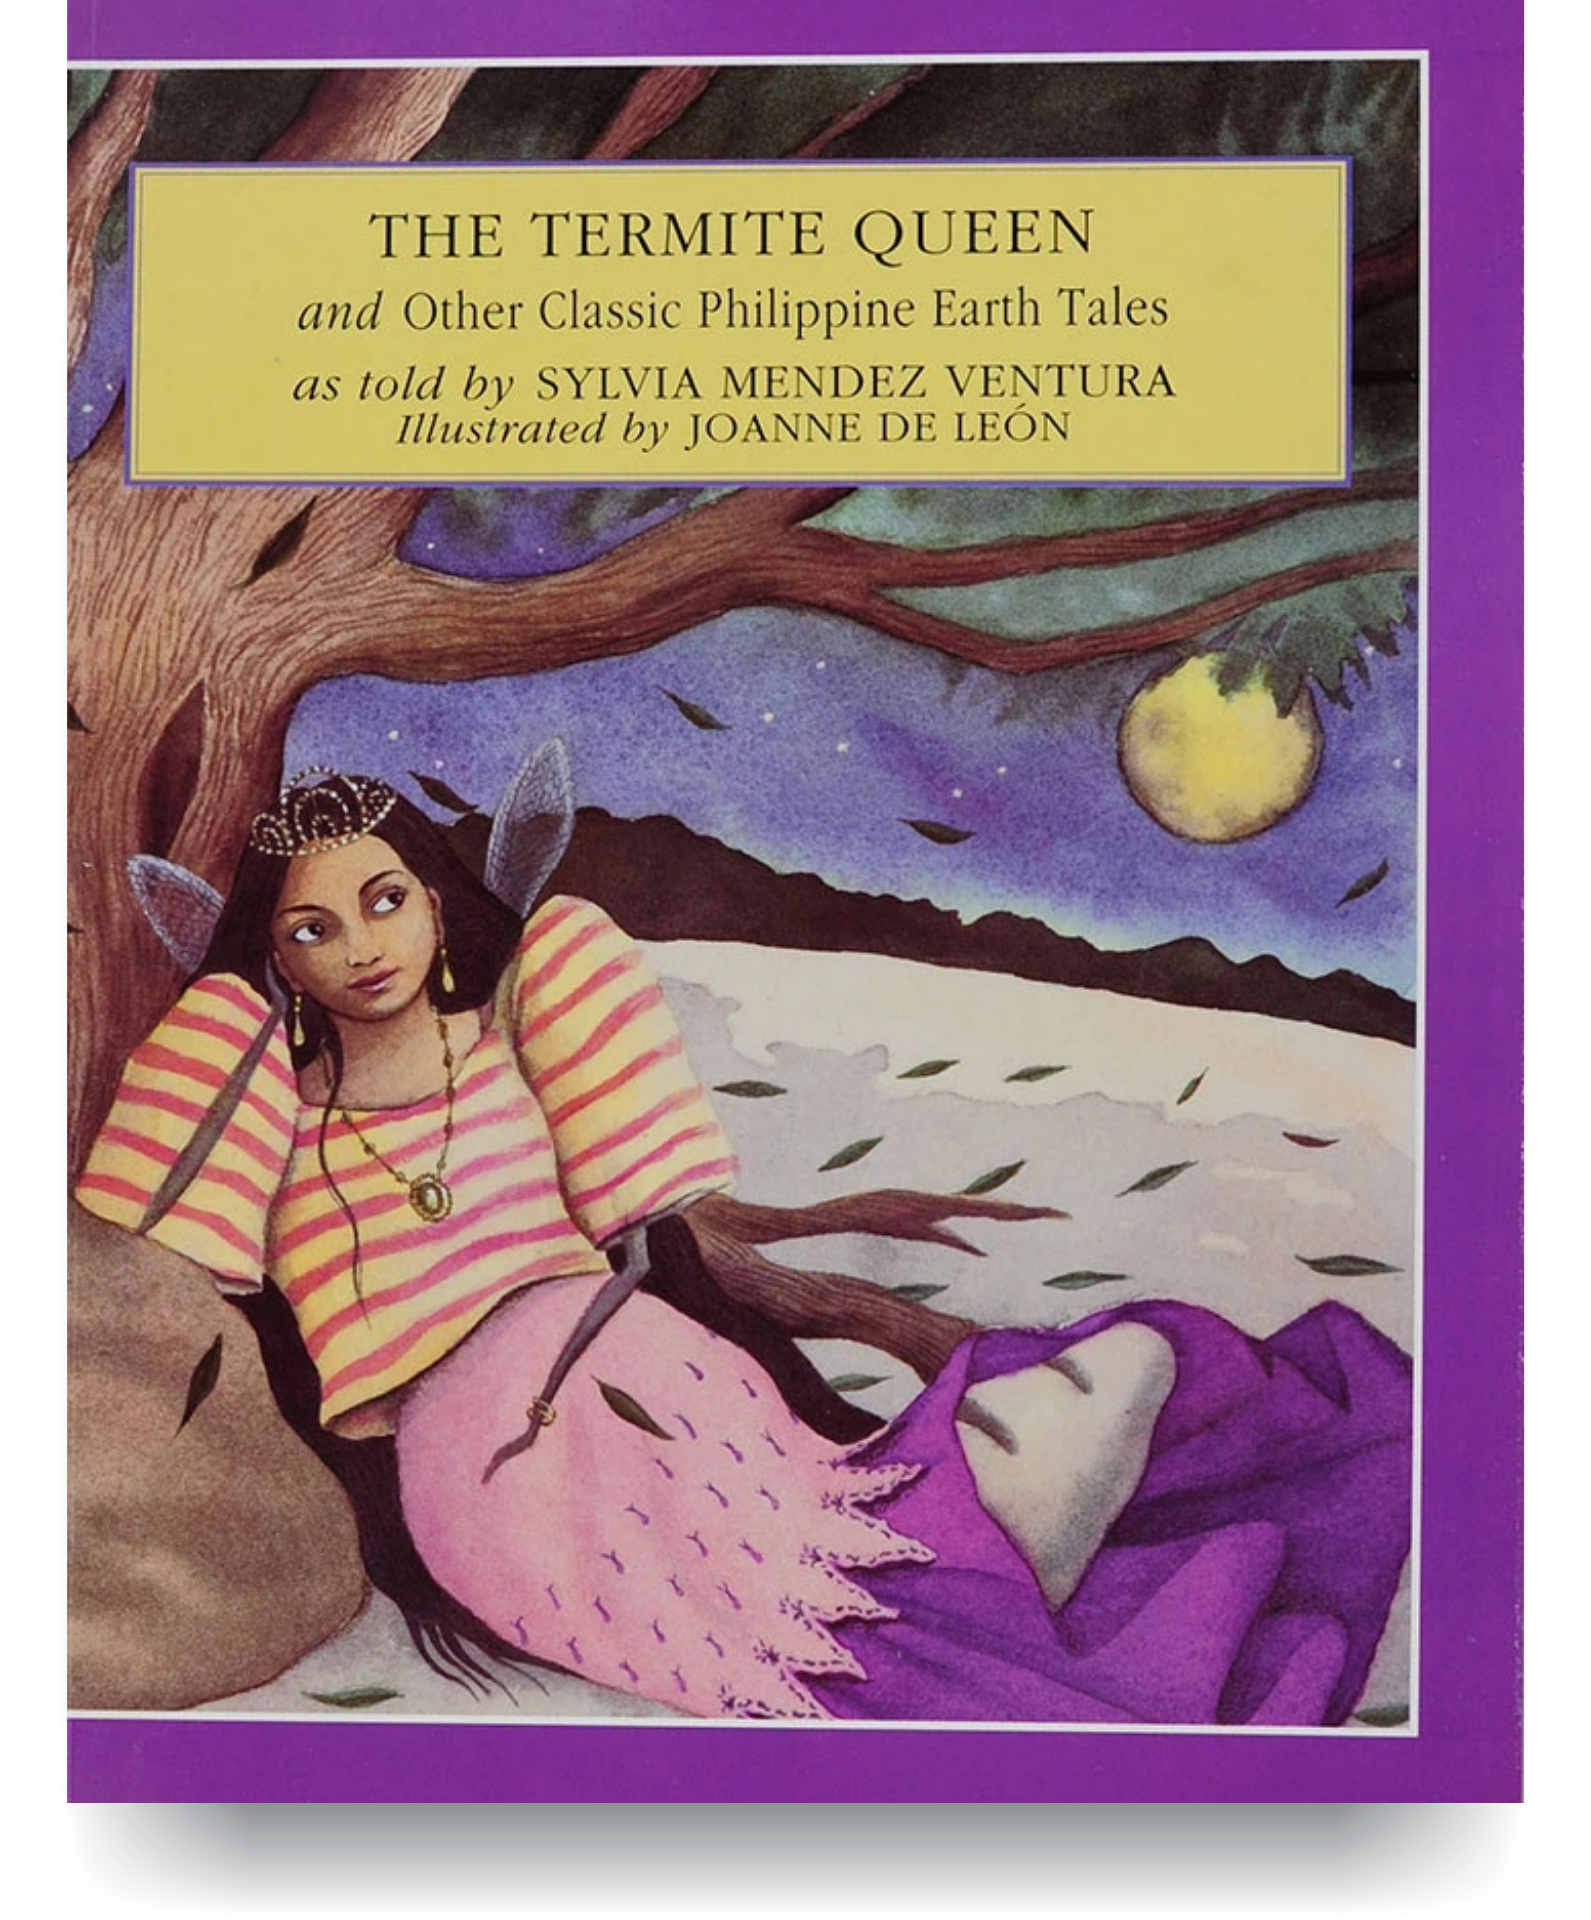 The Termite Queen: And Other Classic Philippine Earth Tales